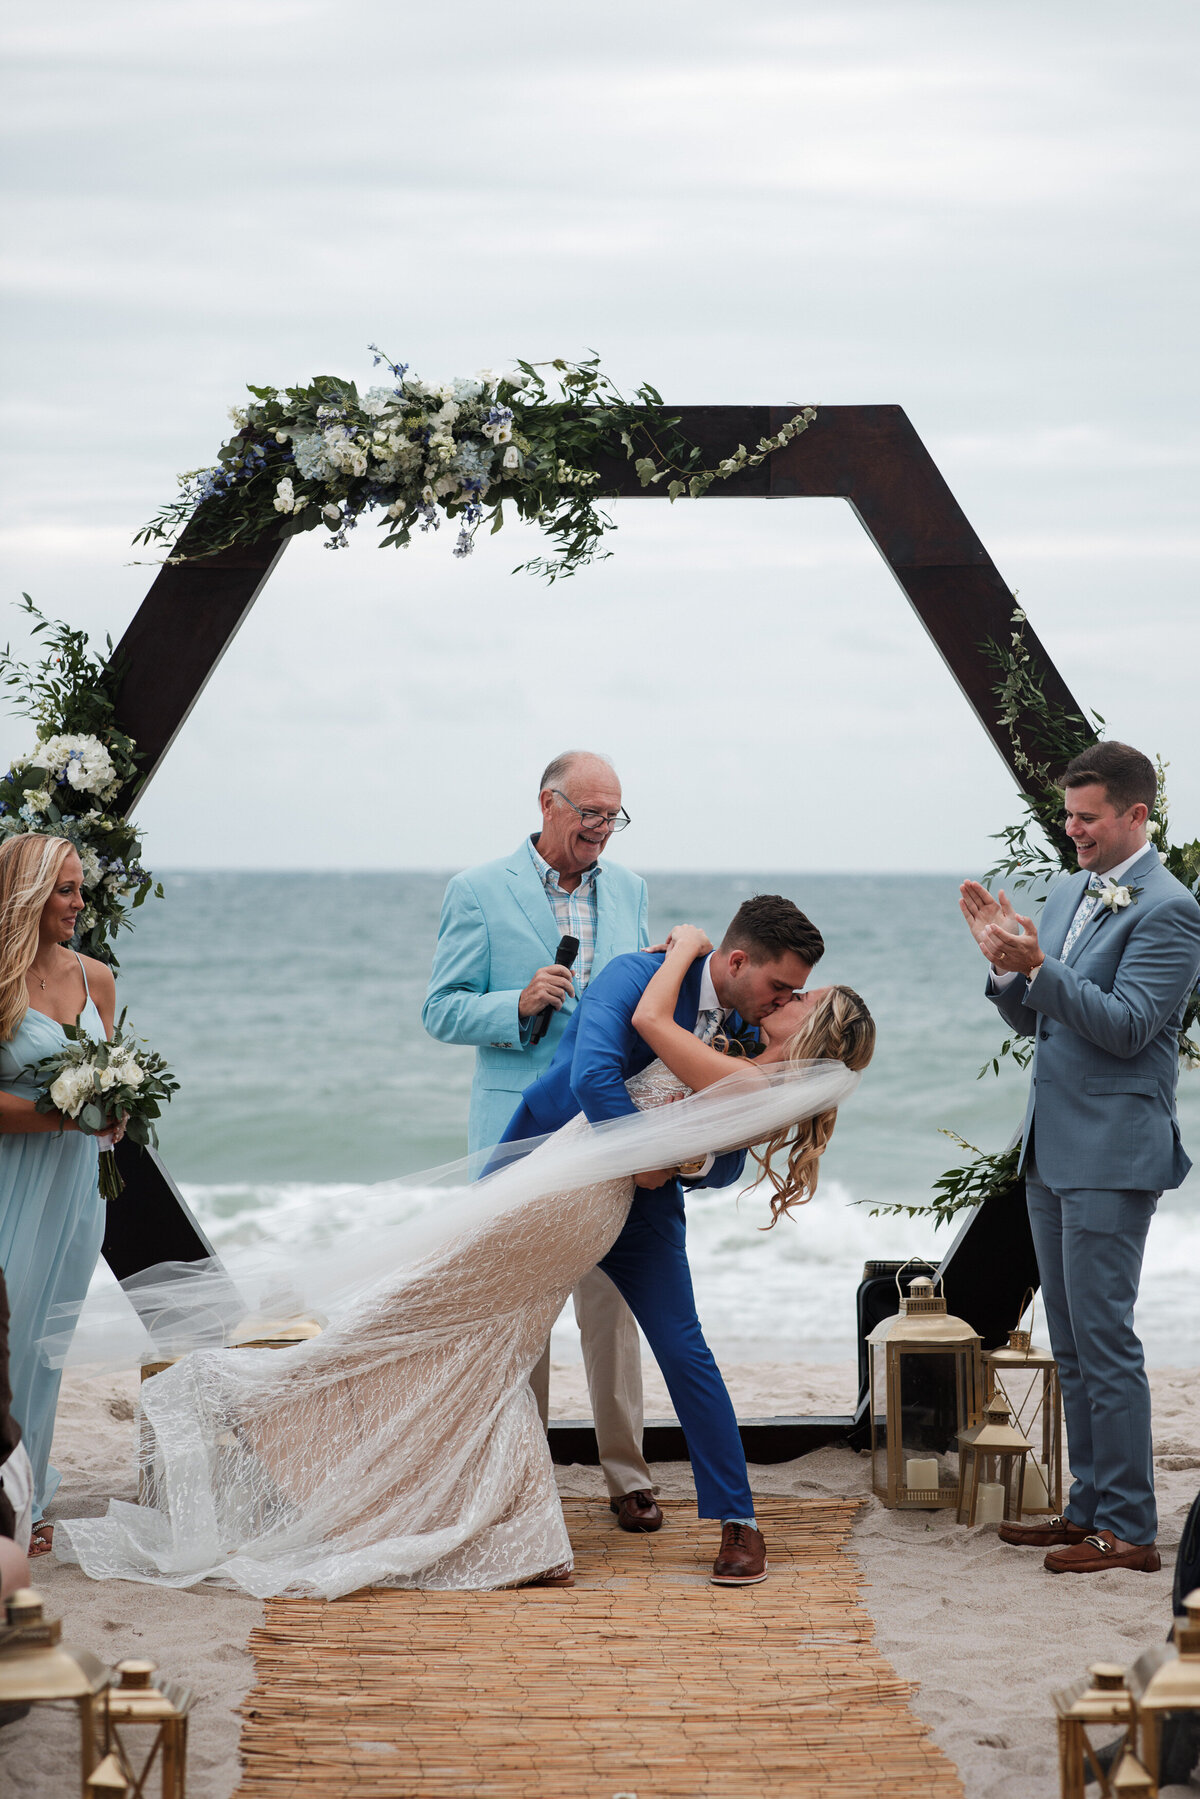 Groom dips his bride in epic first kiss in front of a hexagon wedding arch on the beach